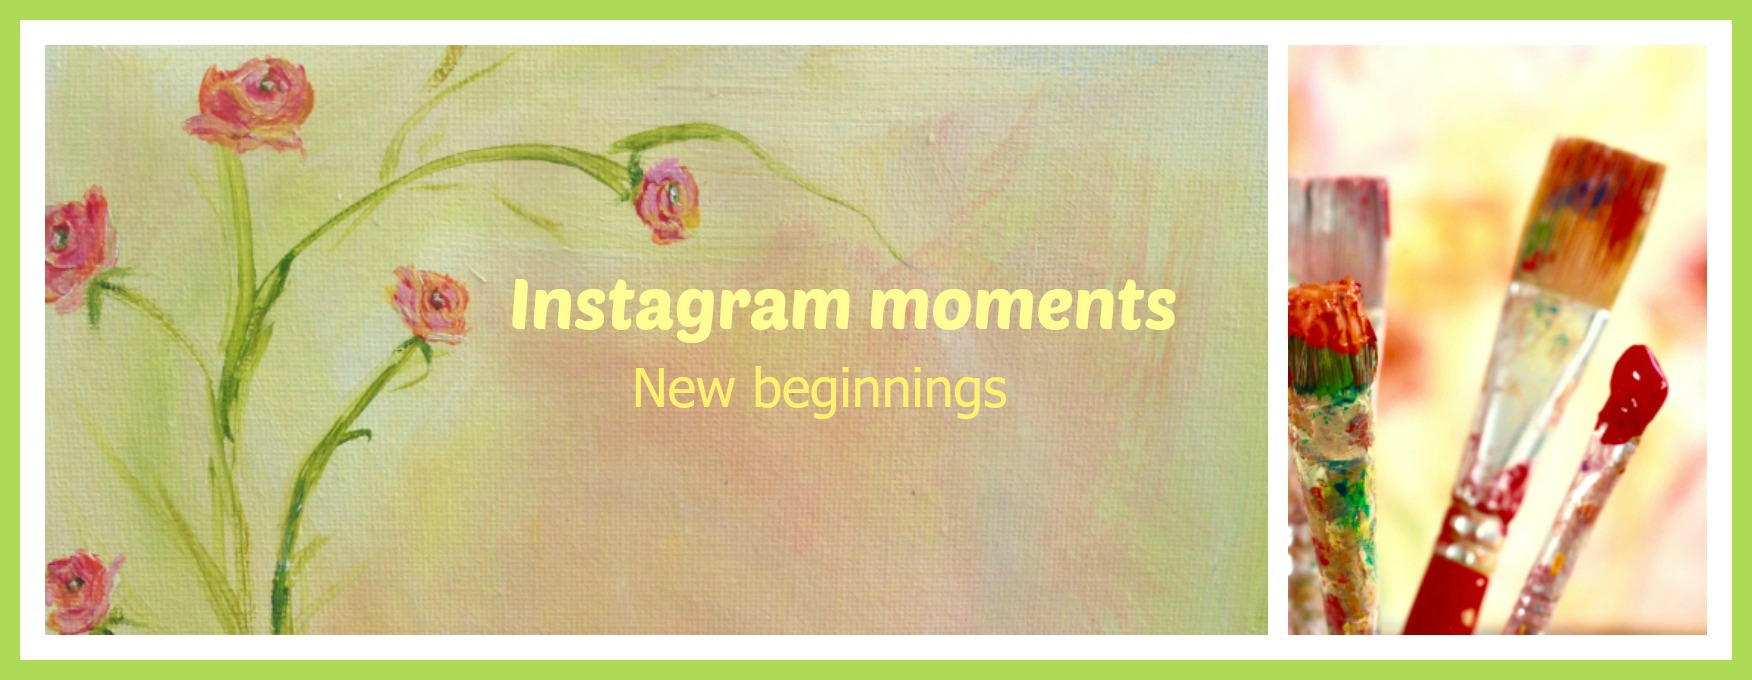 instagram-moments-new-beginnings